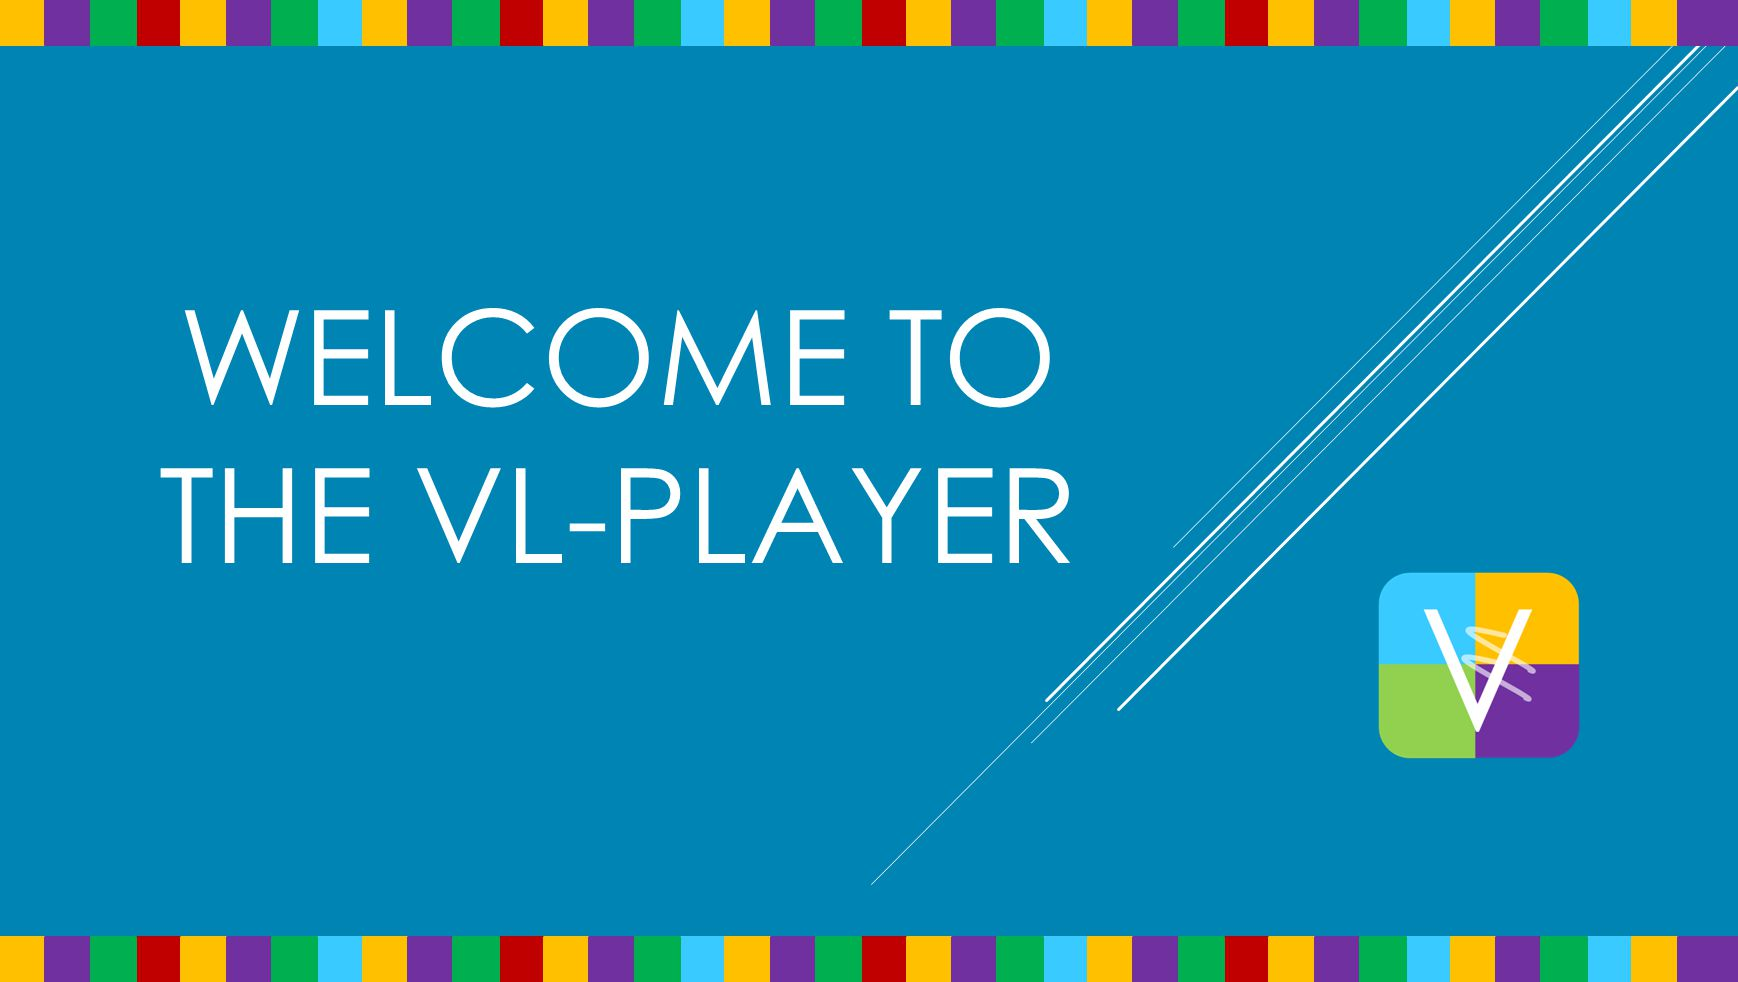 WELCOME TO THE VL-PLAYER